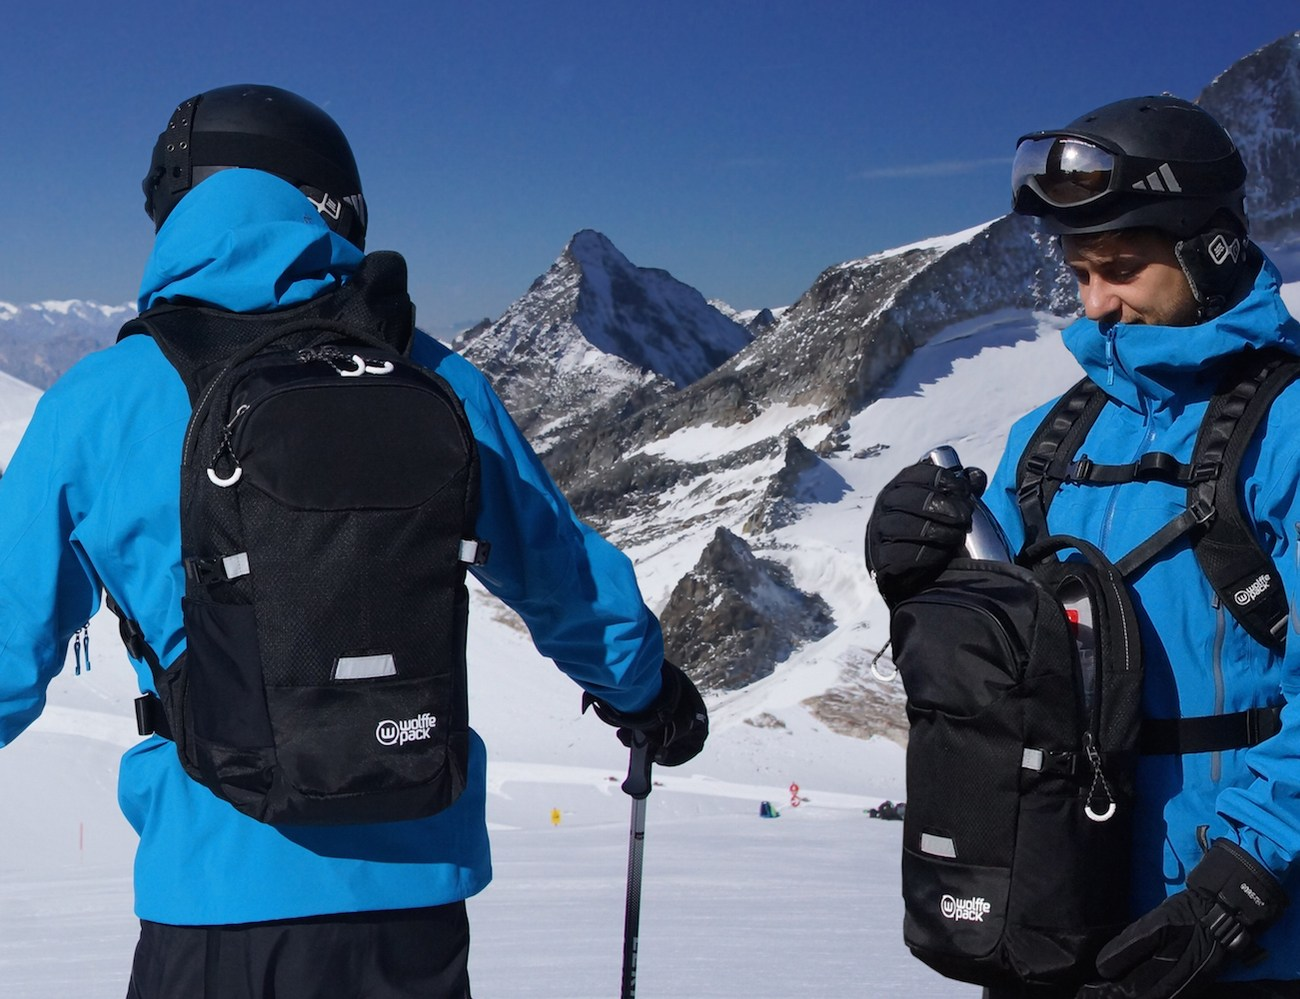 Wolffepack+Summit+%26%238211%3B+The+Ultimate+Snowsports+%26amp%3B+Access+Backpack